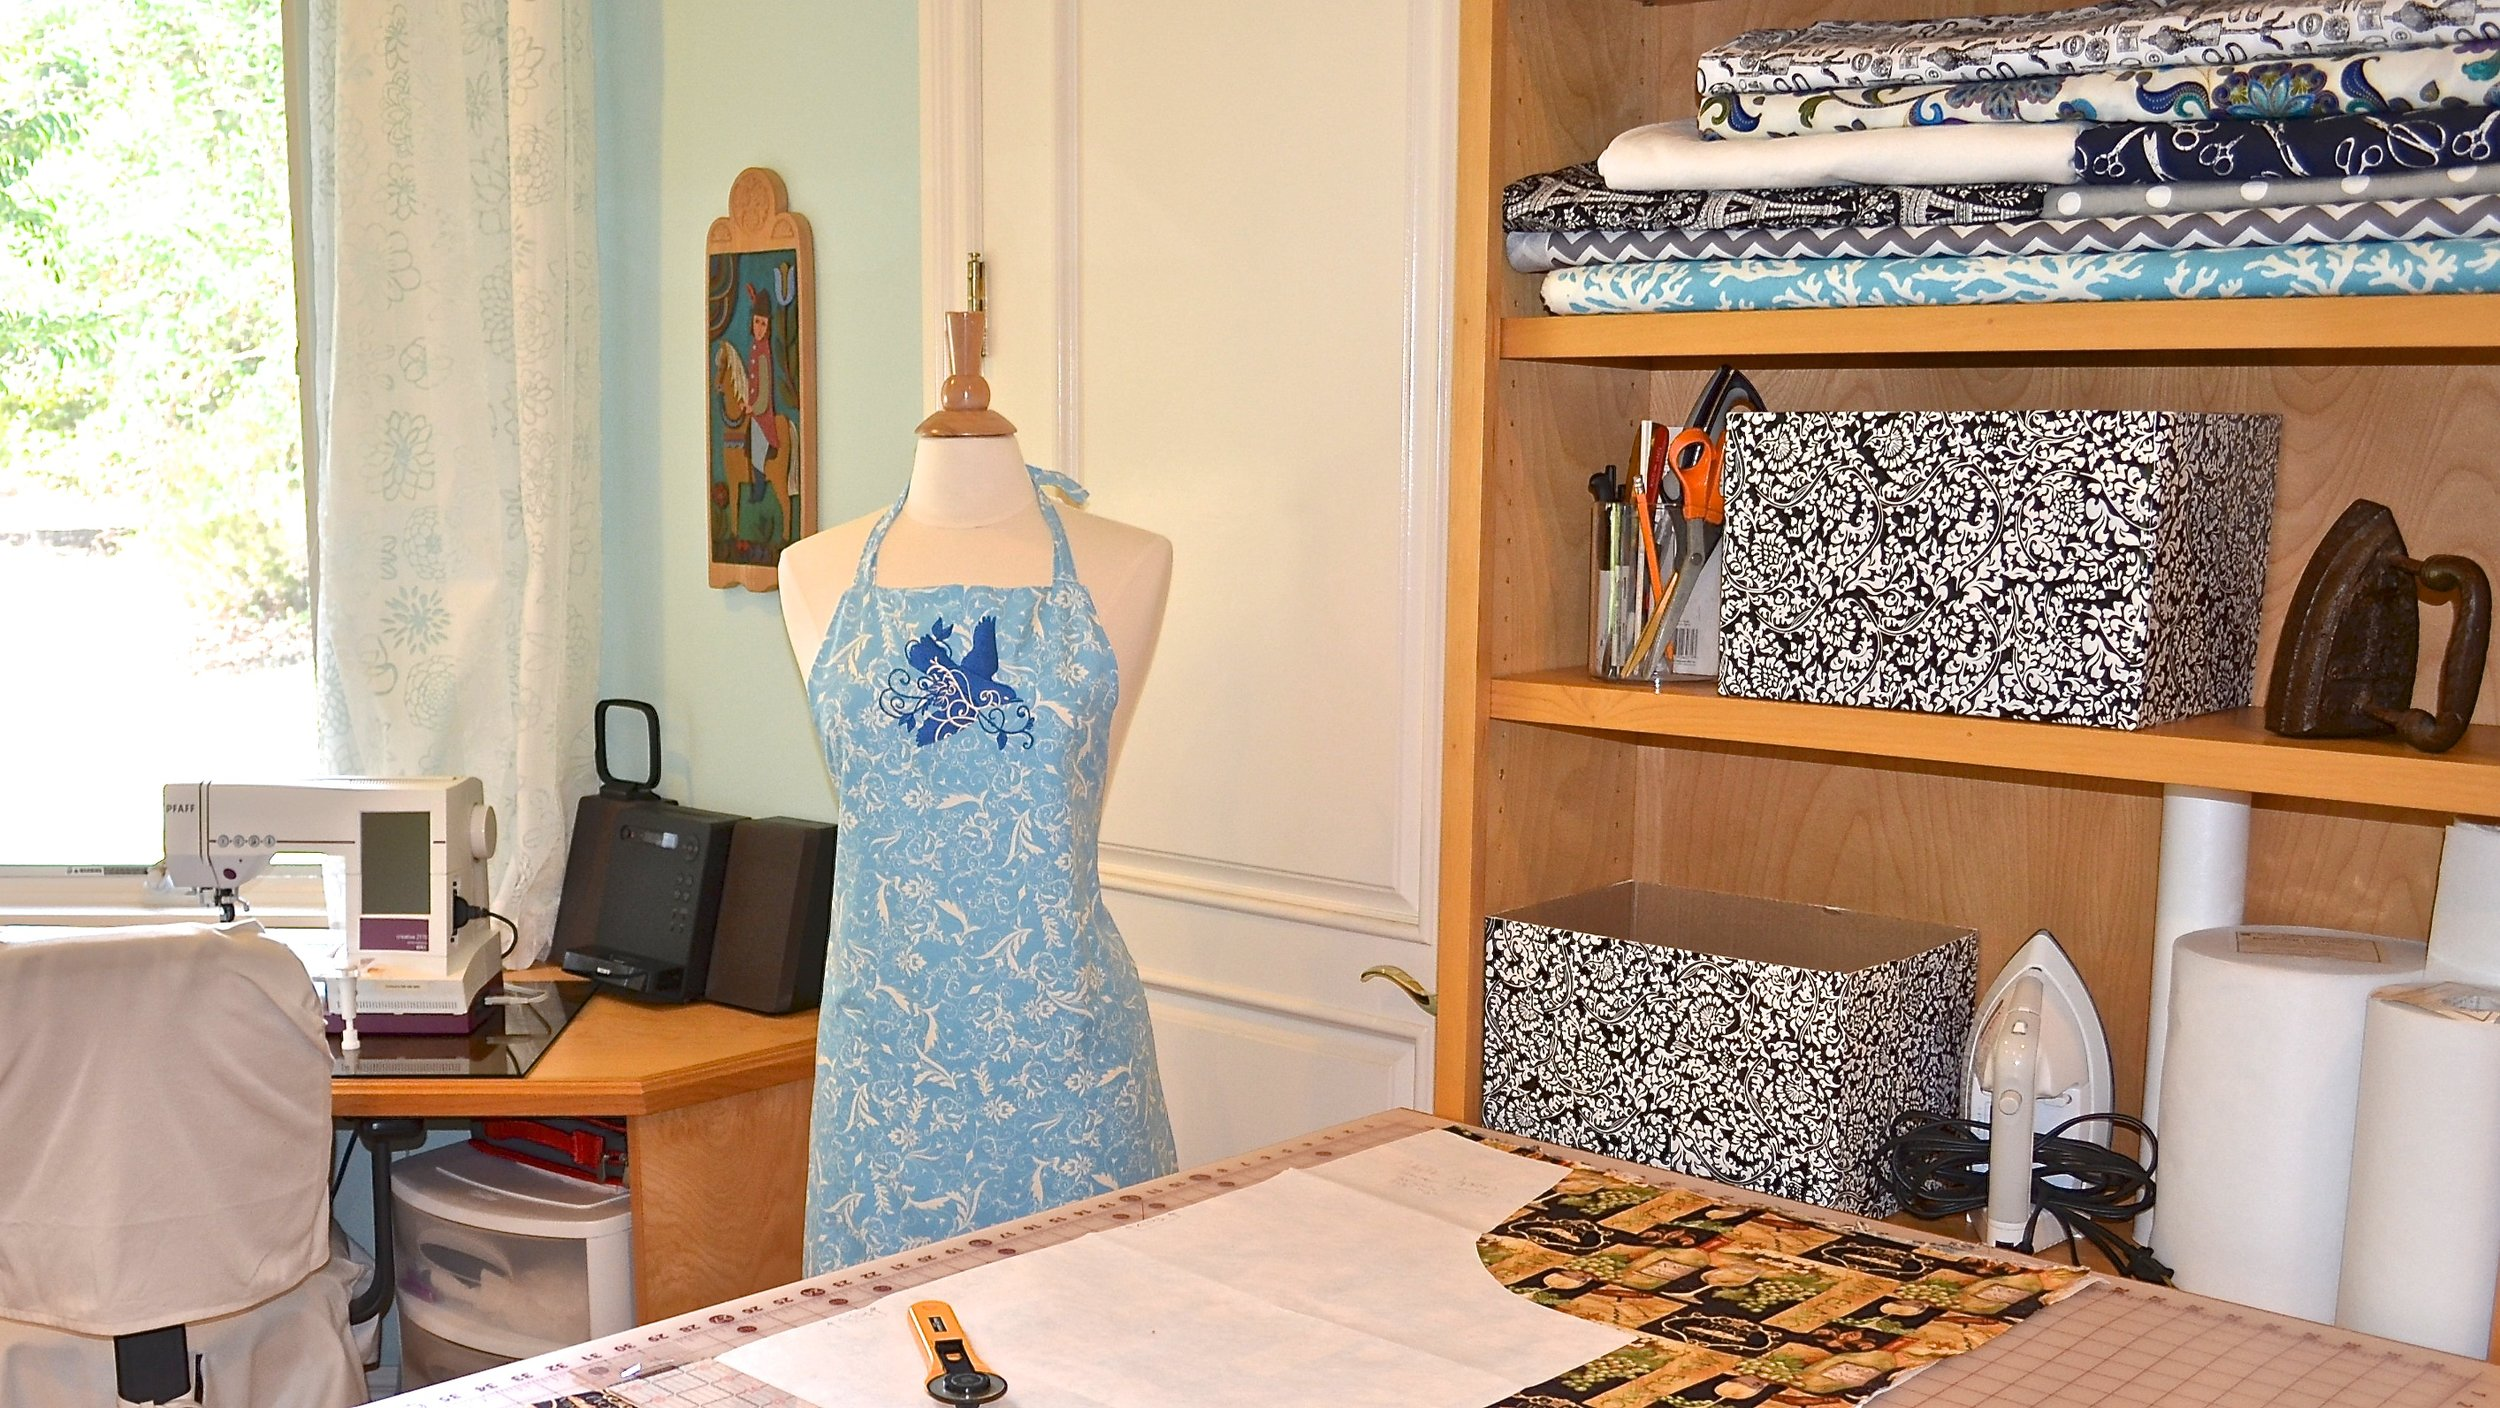 Everyday Embellished craft room